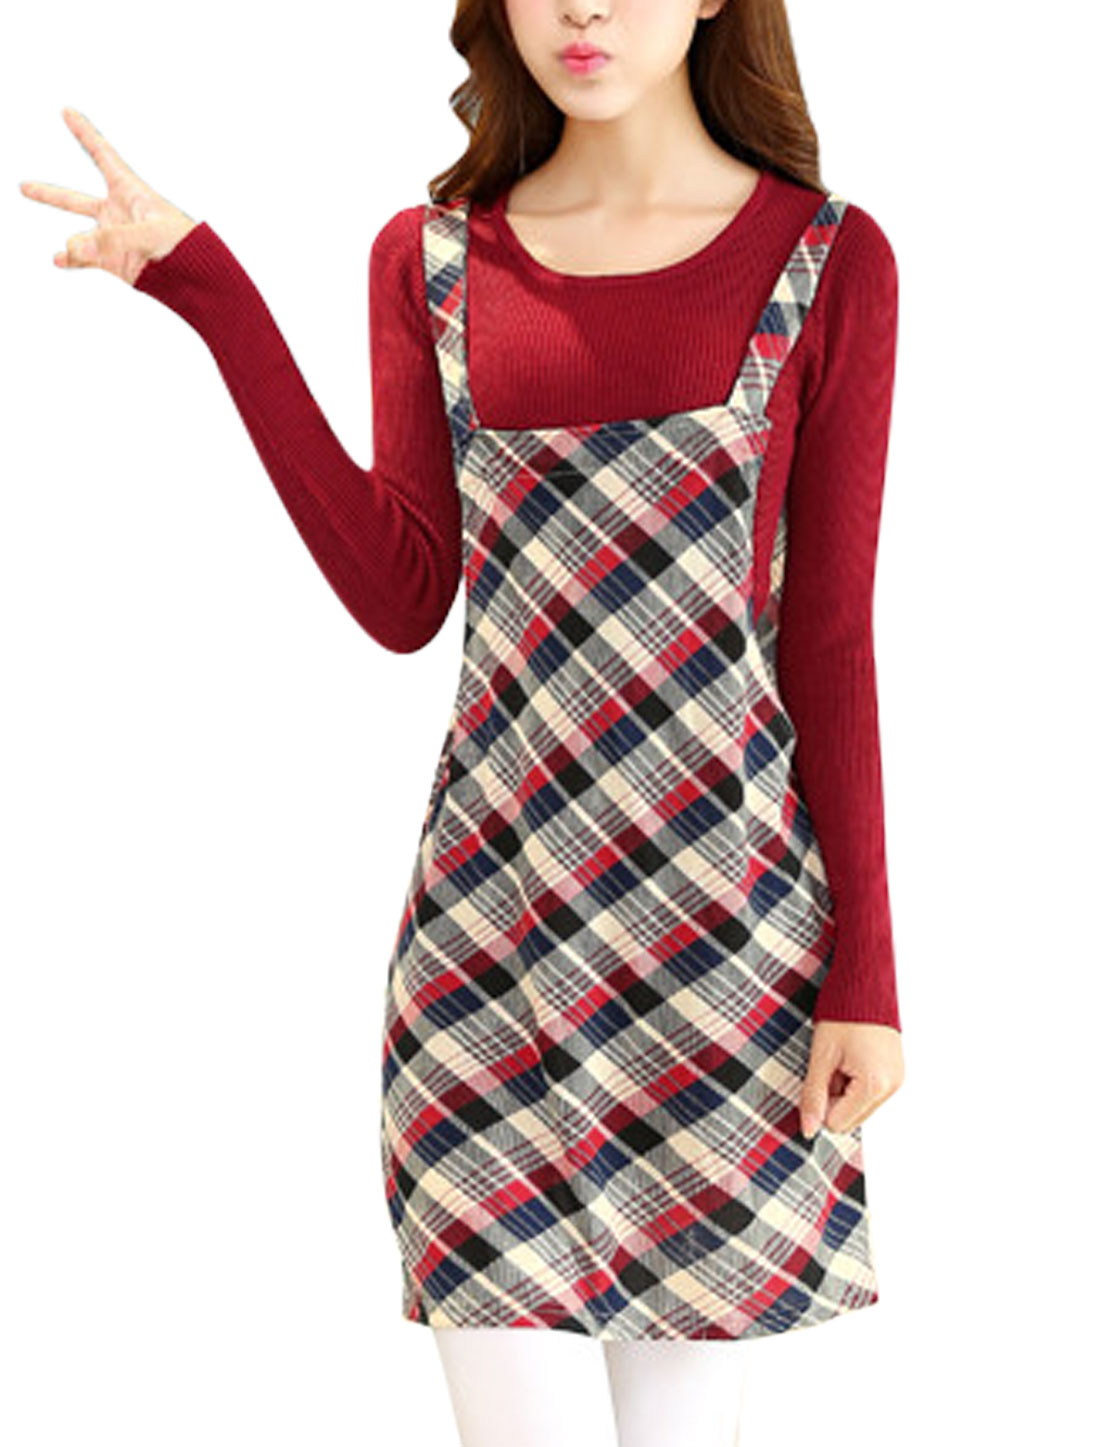 Women Shoulder Straps Plaids Print Straight Knit Suspender Dress Navy Blue Red M